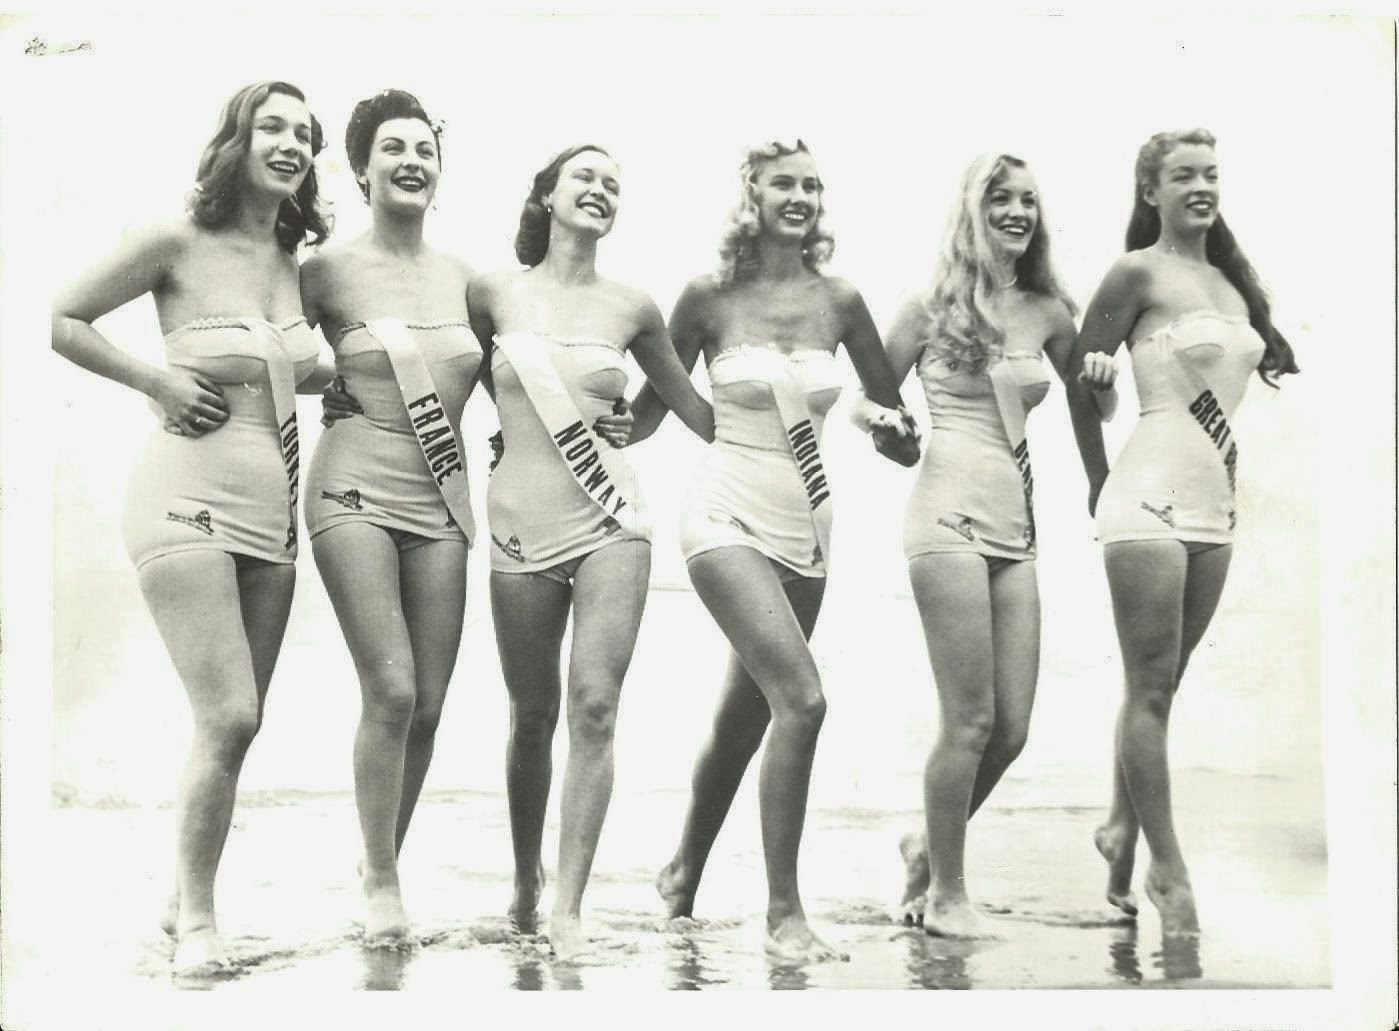 Miss Universe Contestants in Bathing Suits - Atlantic City, USA 1953